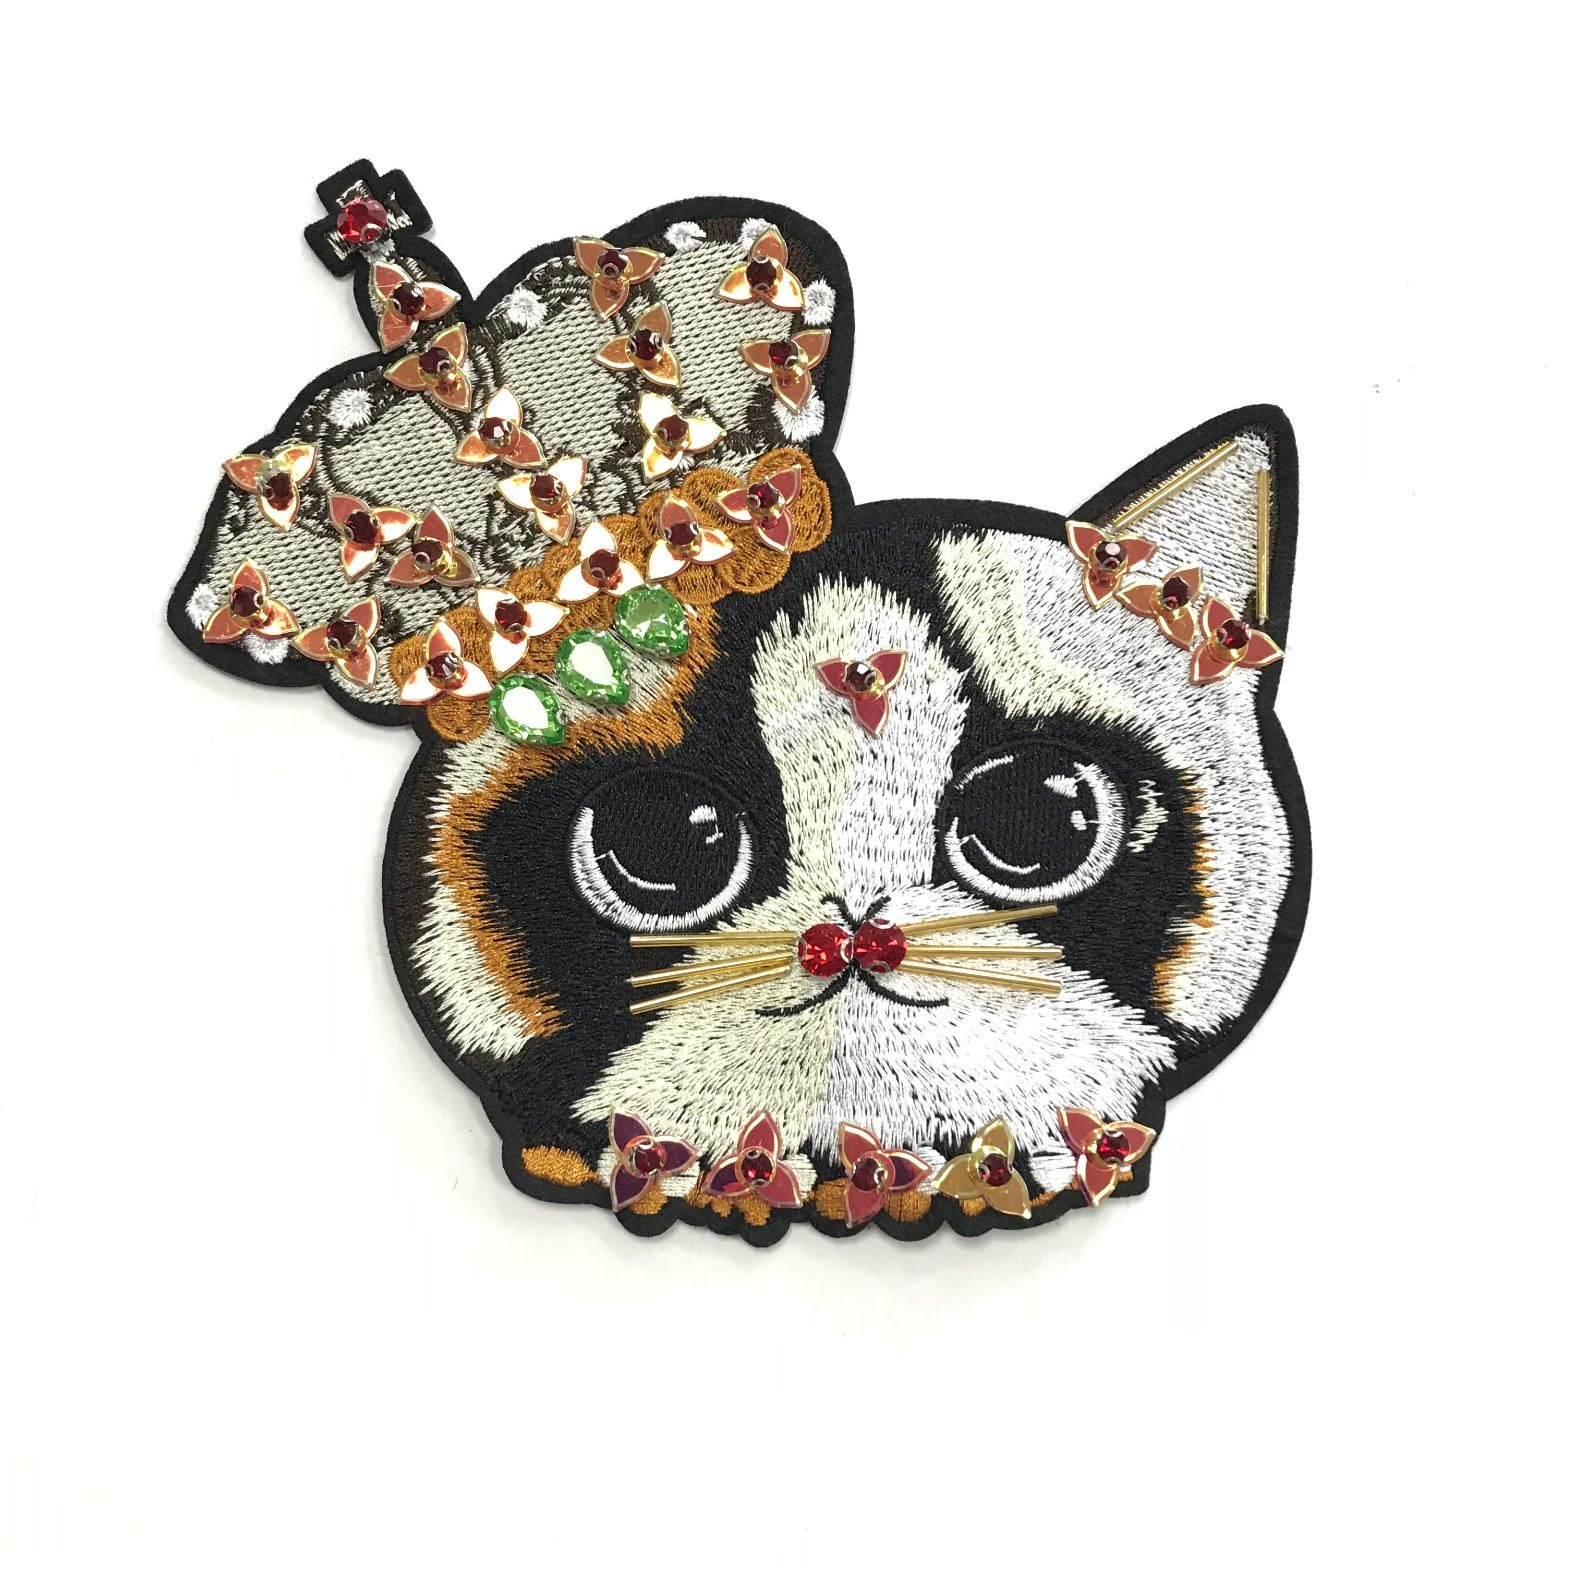 Handmade Embroidery Rhinestone Cat Animal Clothing Accessories Patch